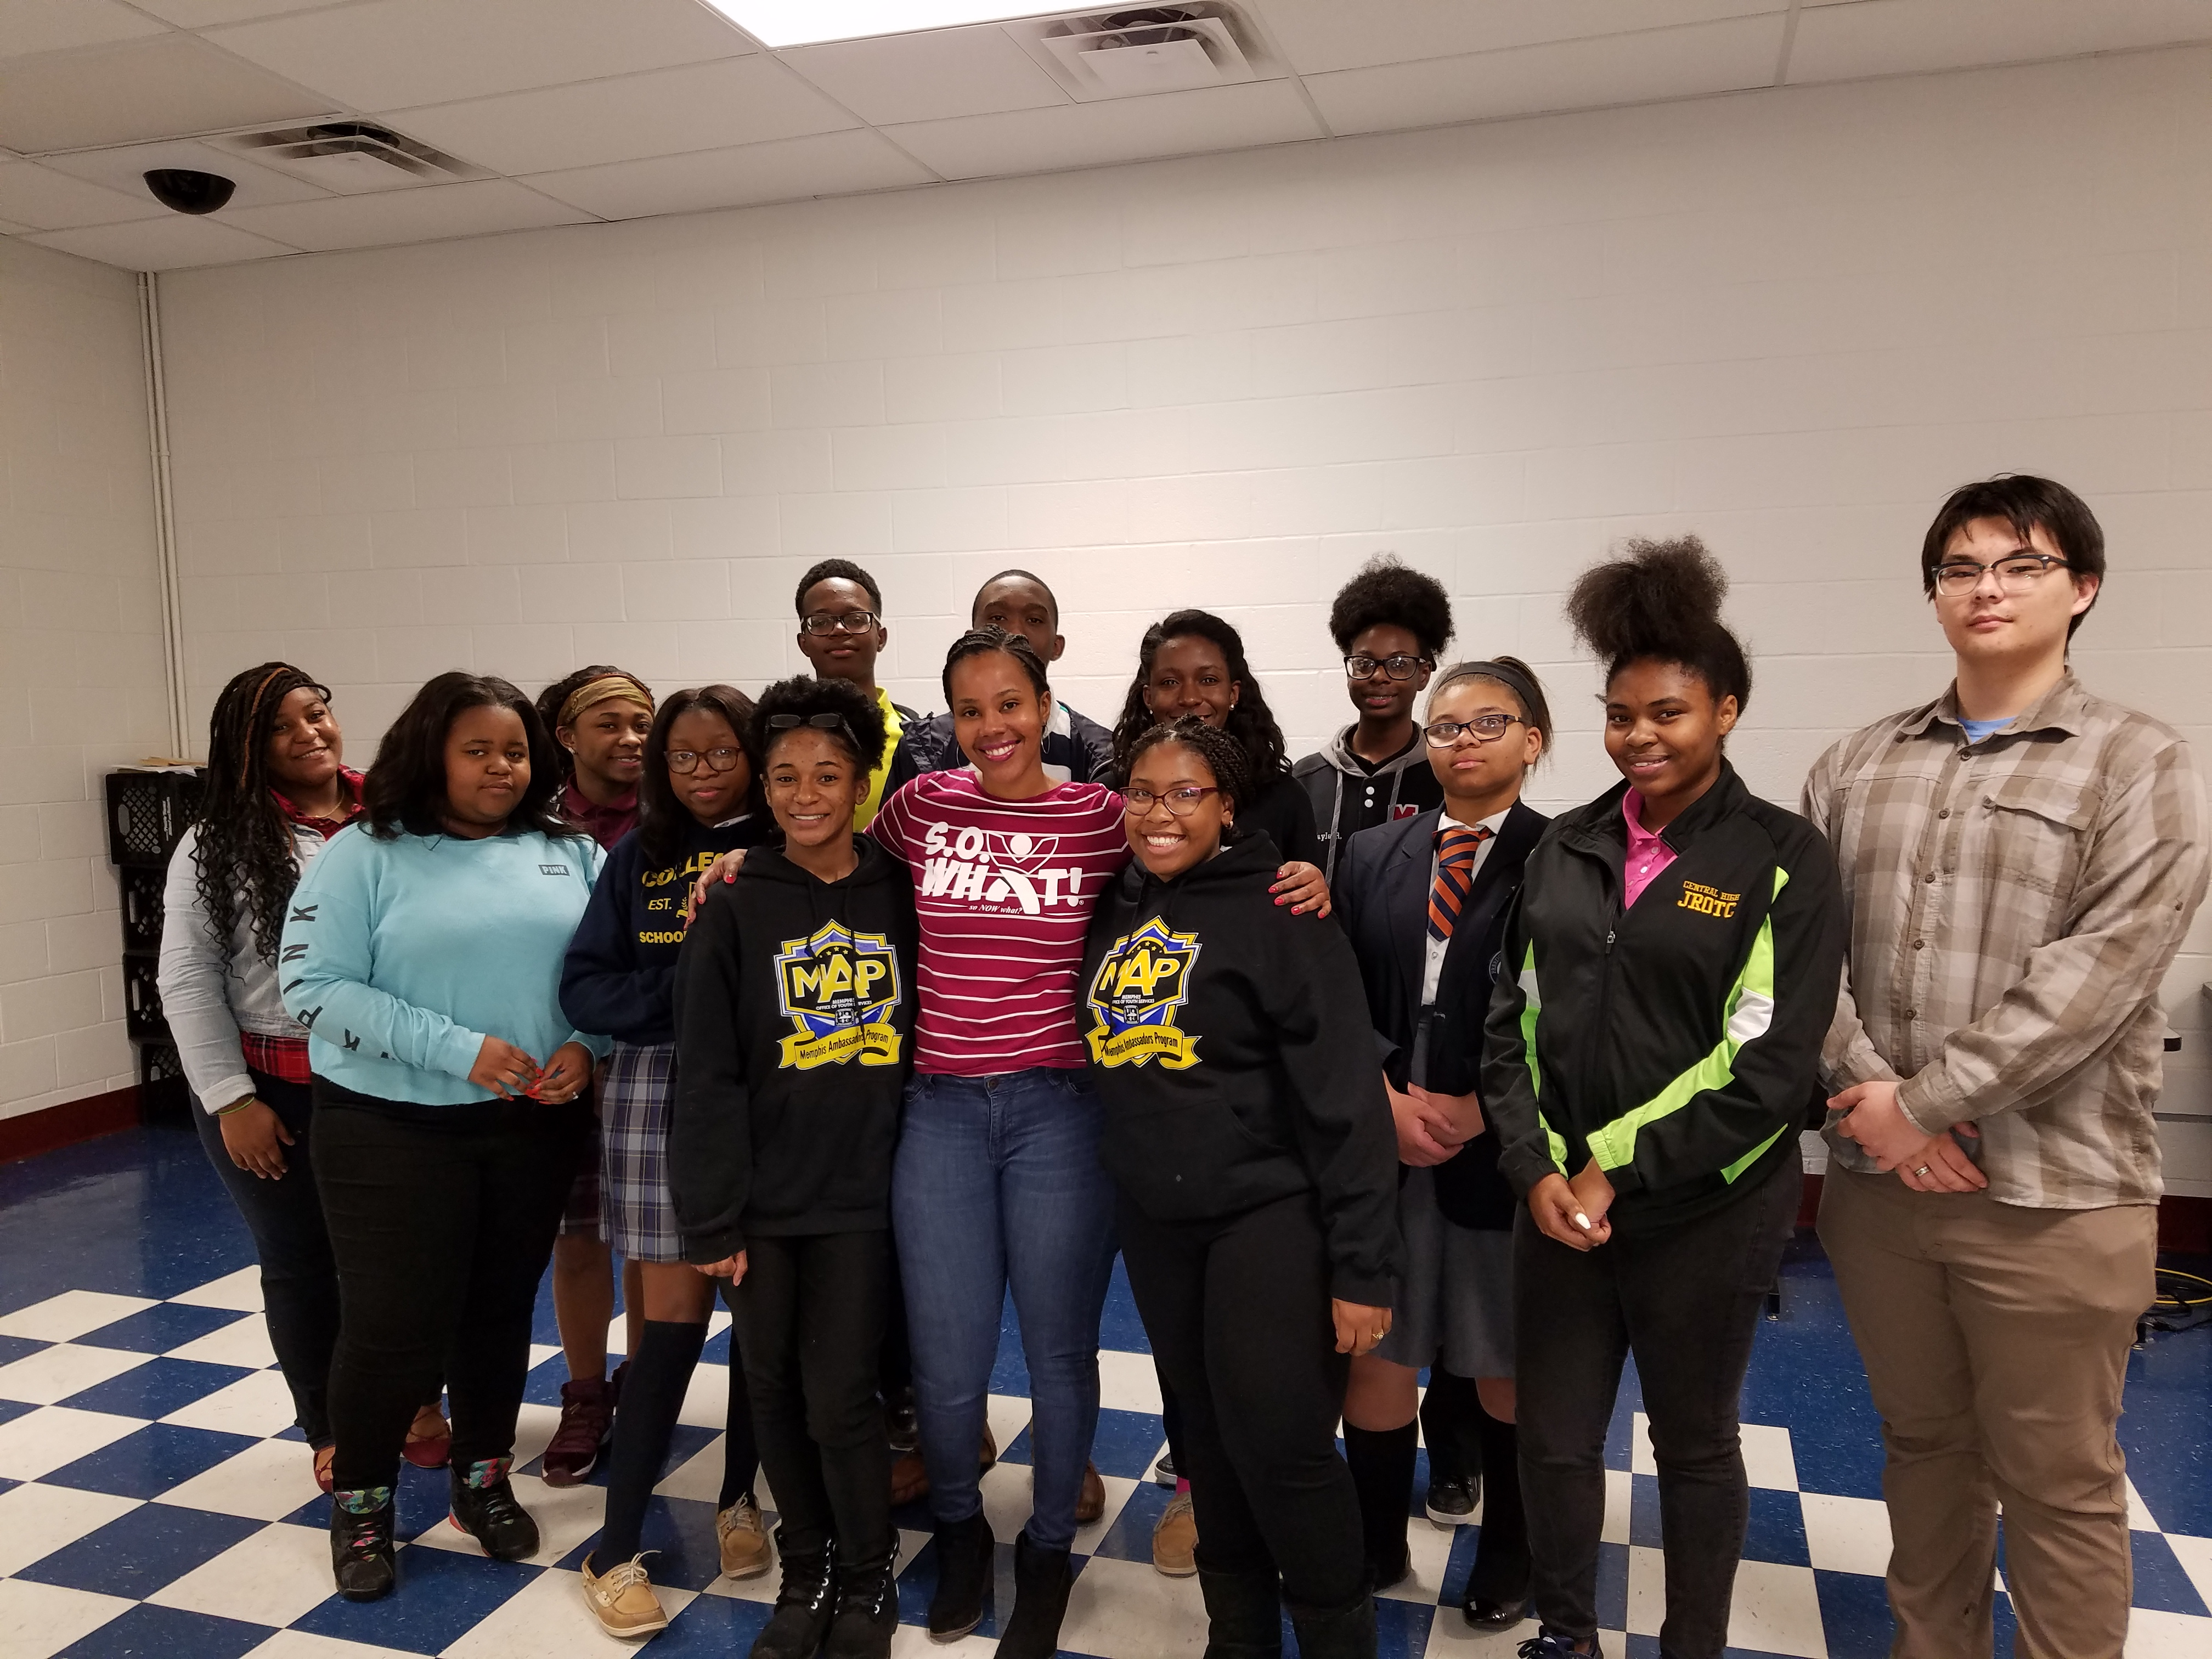 Summer Owens, motivational speaker poses with high school students who used the S.O. What! curriculum